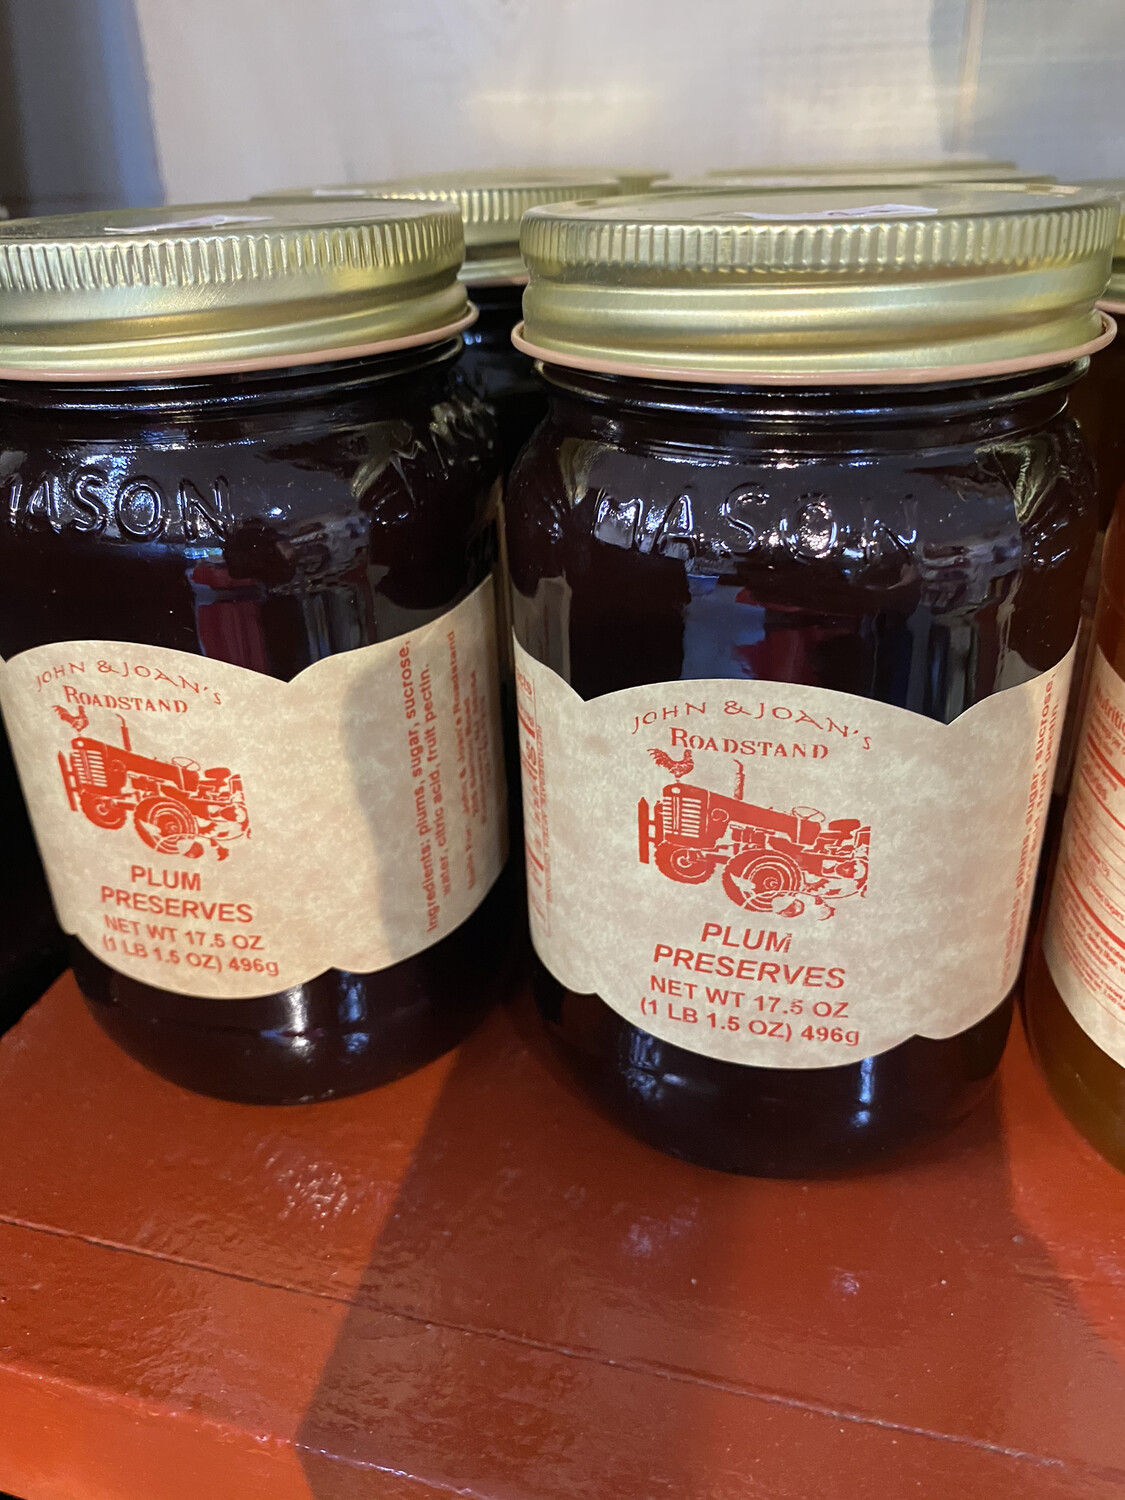 Plum Preserves 17.5 oz